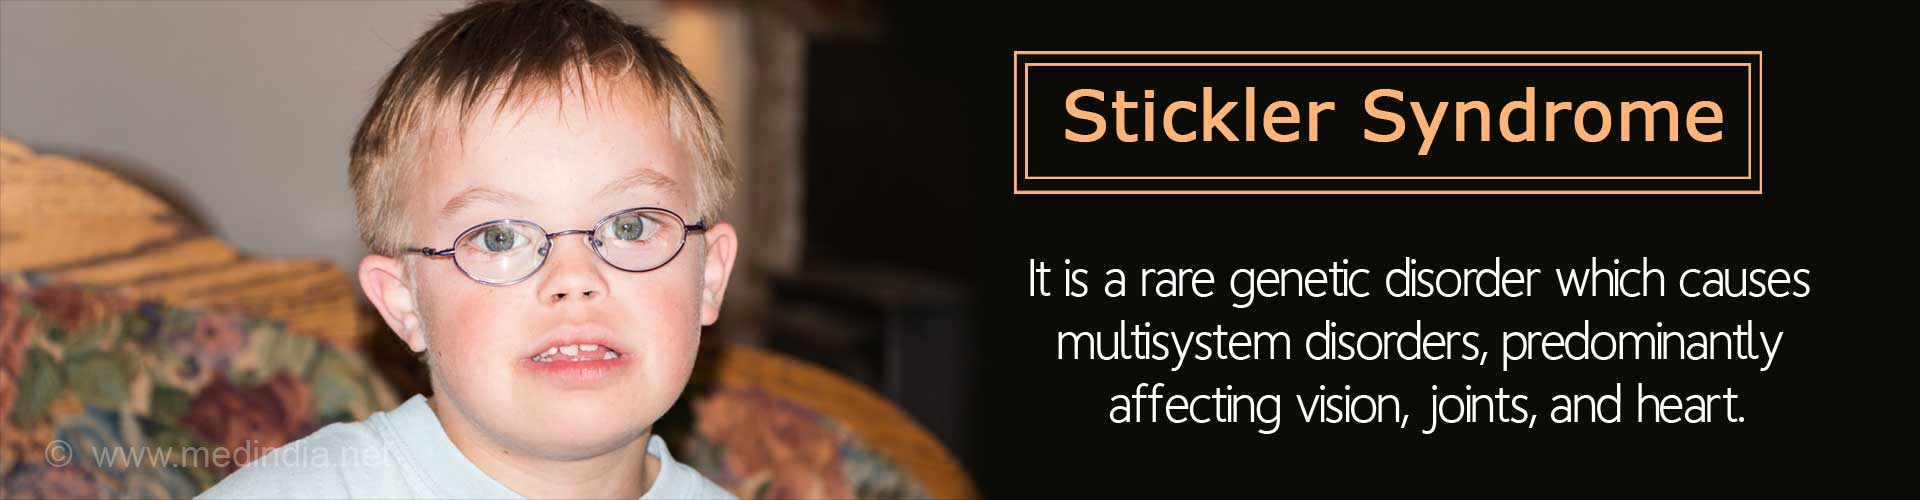 Stickler Syndrome - It is a rare genetic disorder which causes multisystem disorders, predominantly affecting vision, joints, and heart